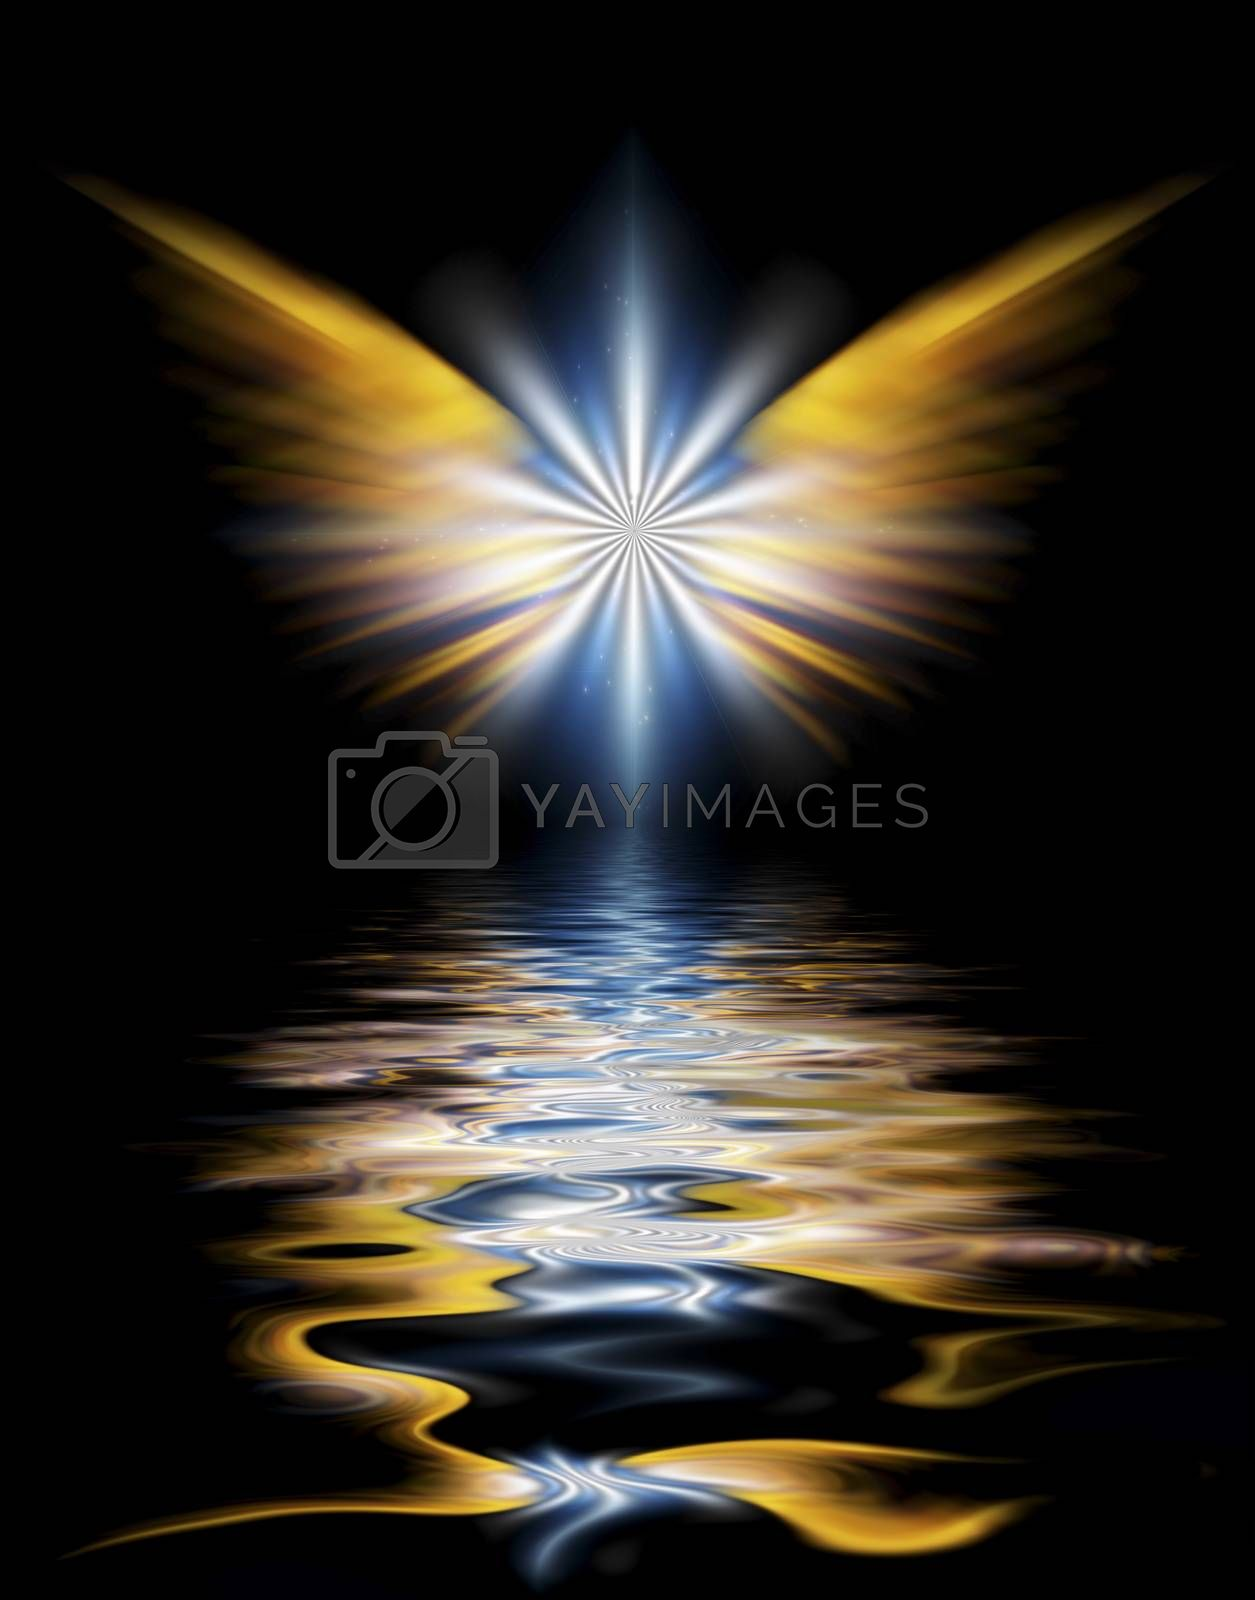 Shining angel wings above water surface